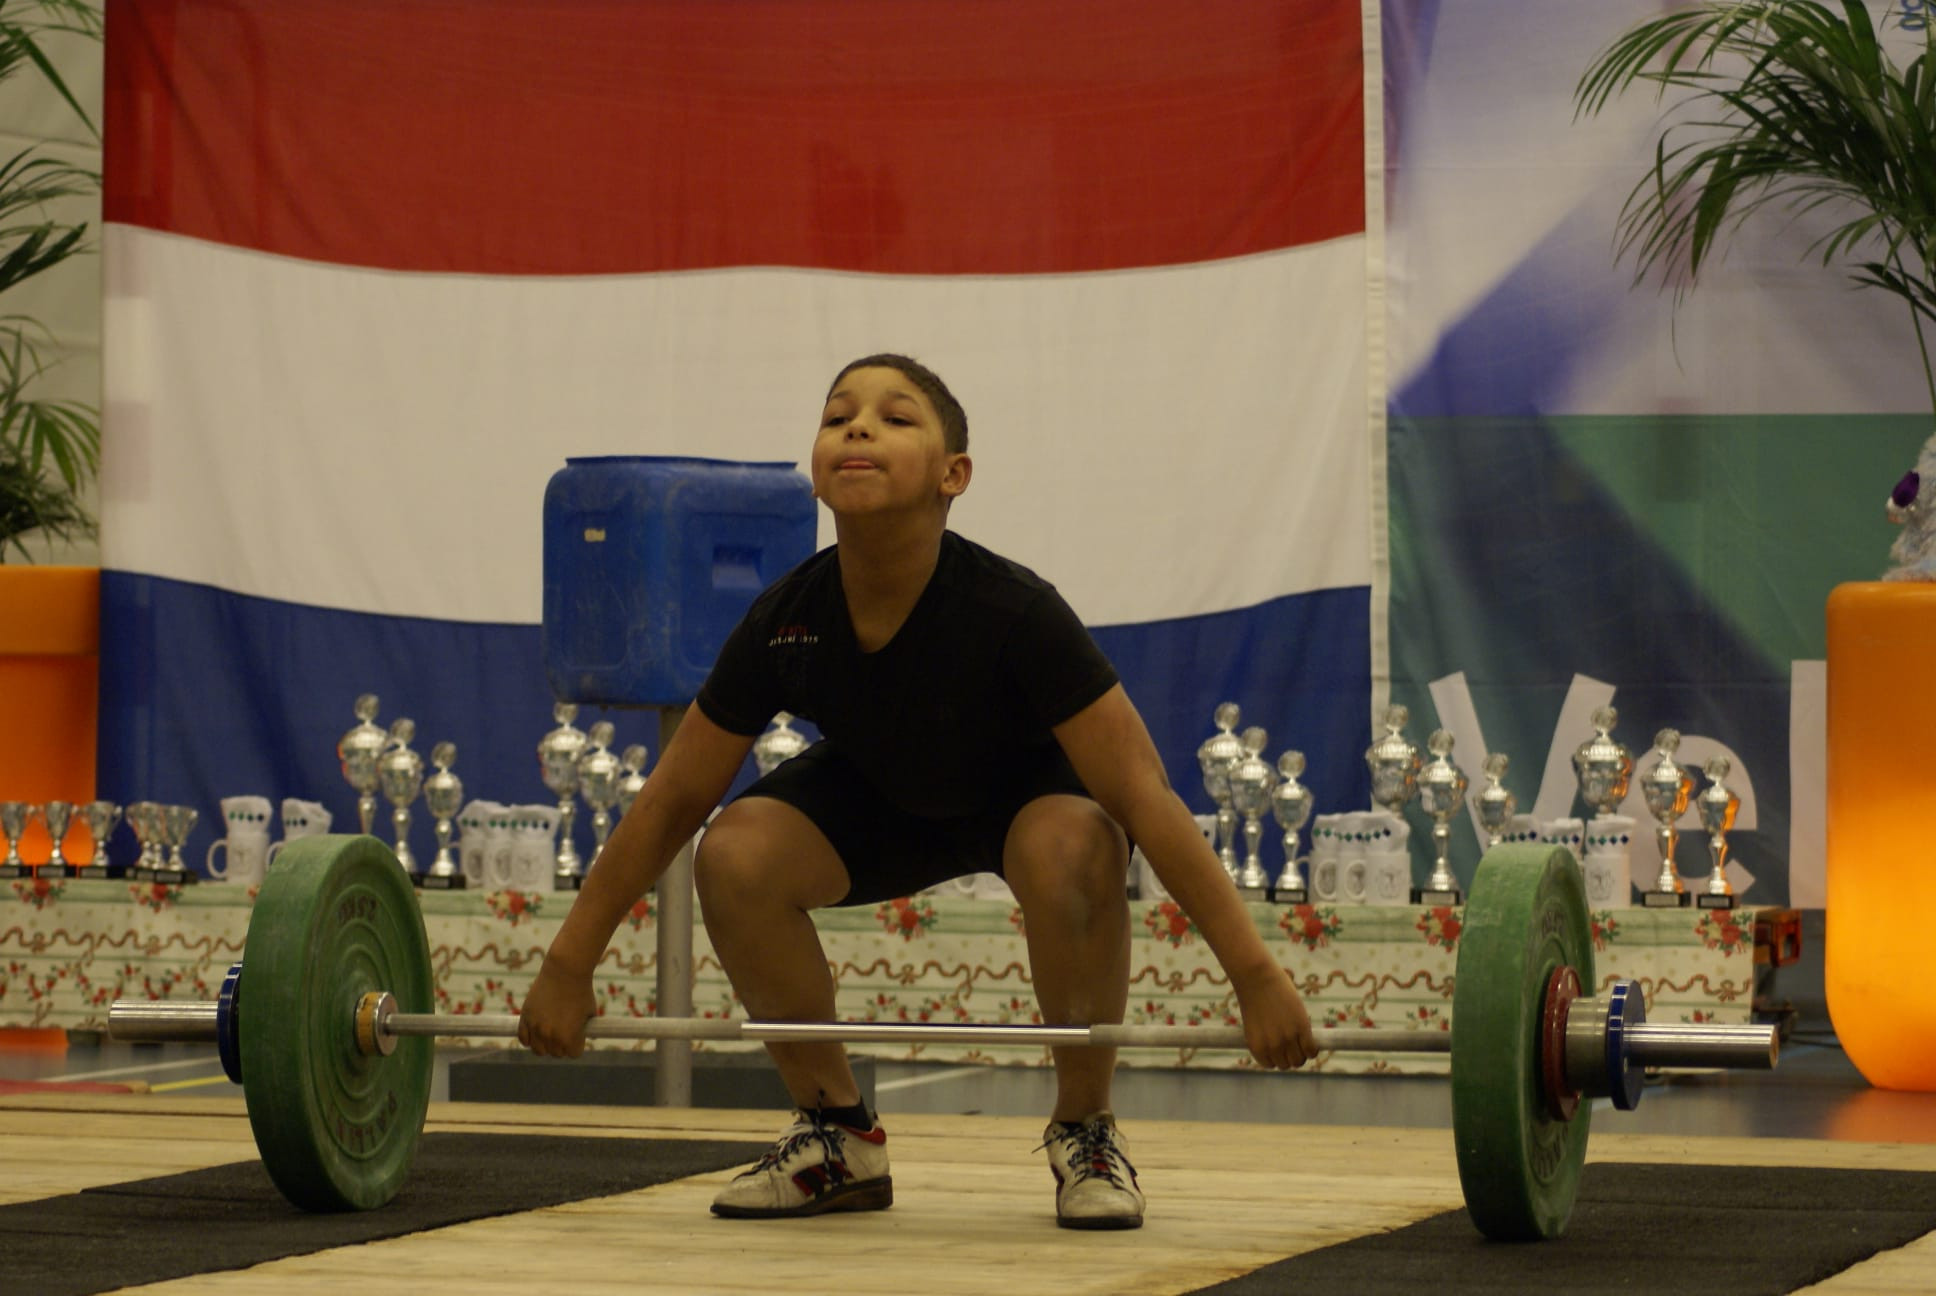 Enzo Kuworge is aiming to become the first Dutch weightlifter at an Olympics since Piet van de Kruk in 1968 ©Ilona Koster